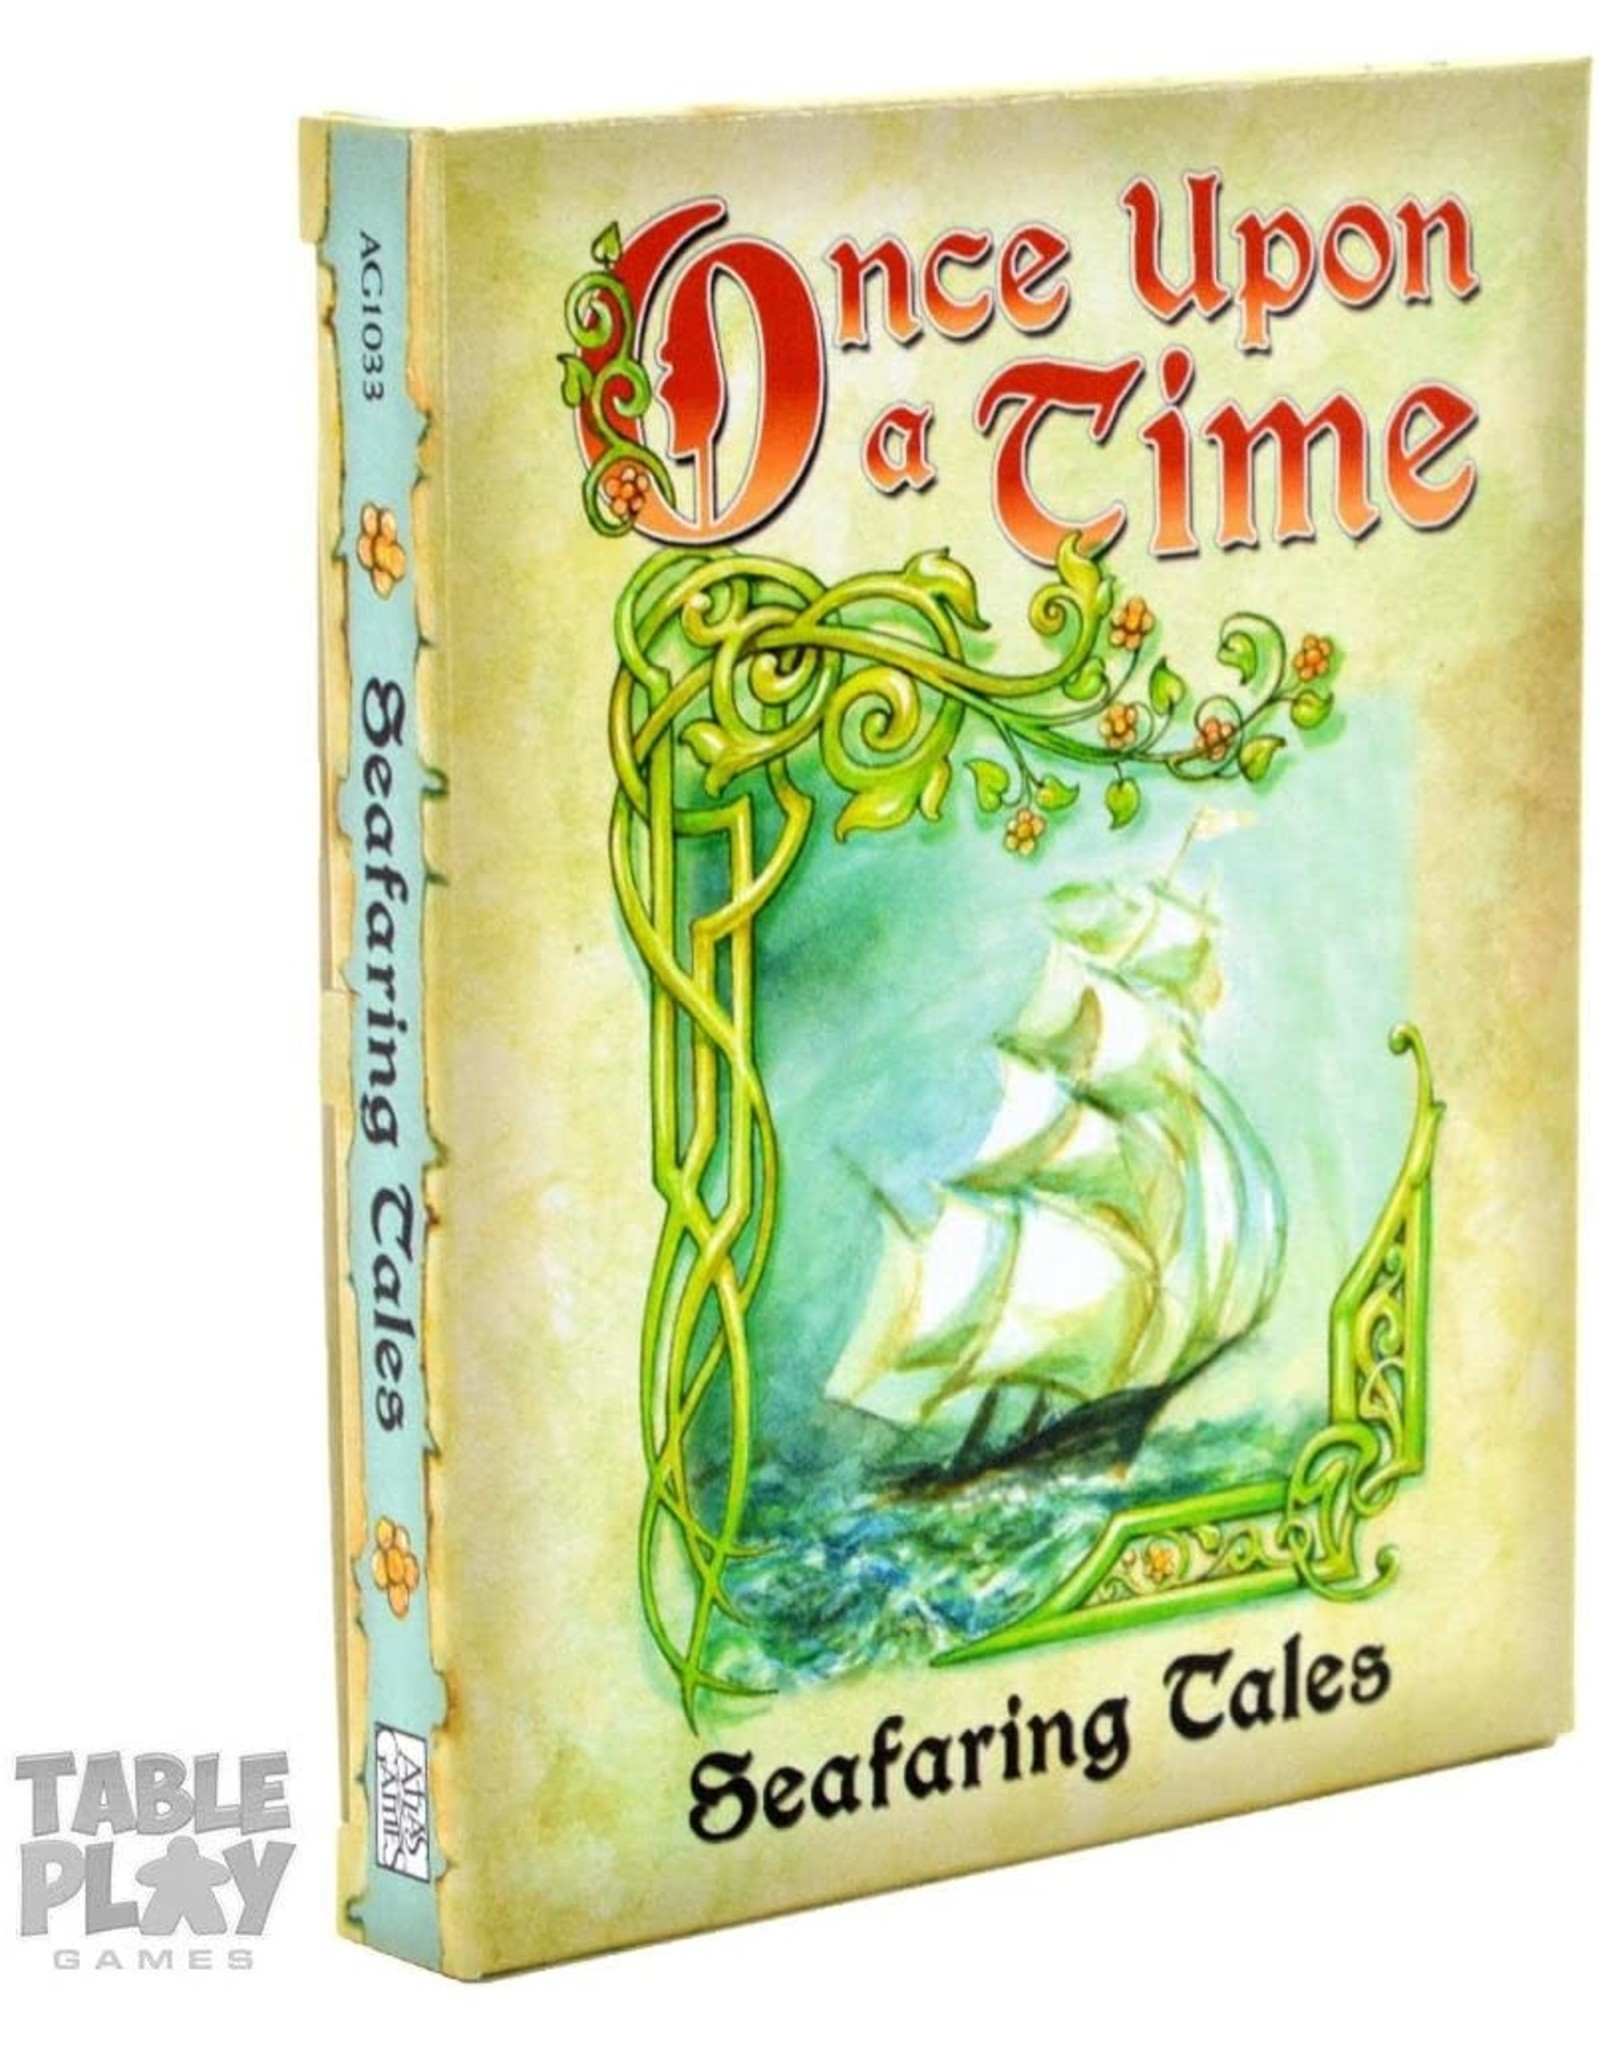 Once Upon A Time Seafaring Tales Expansion